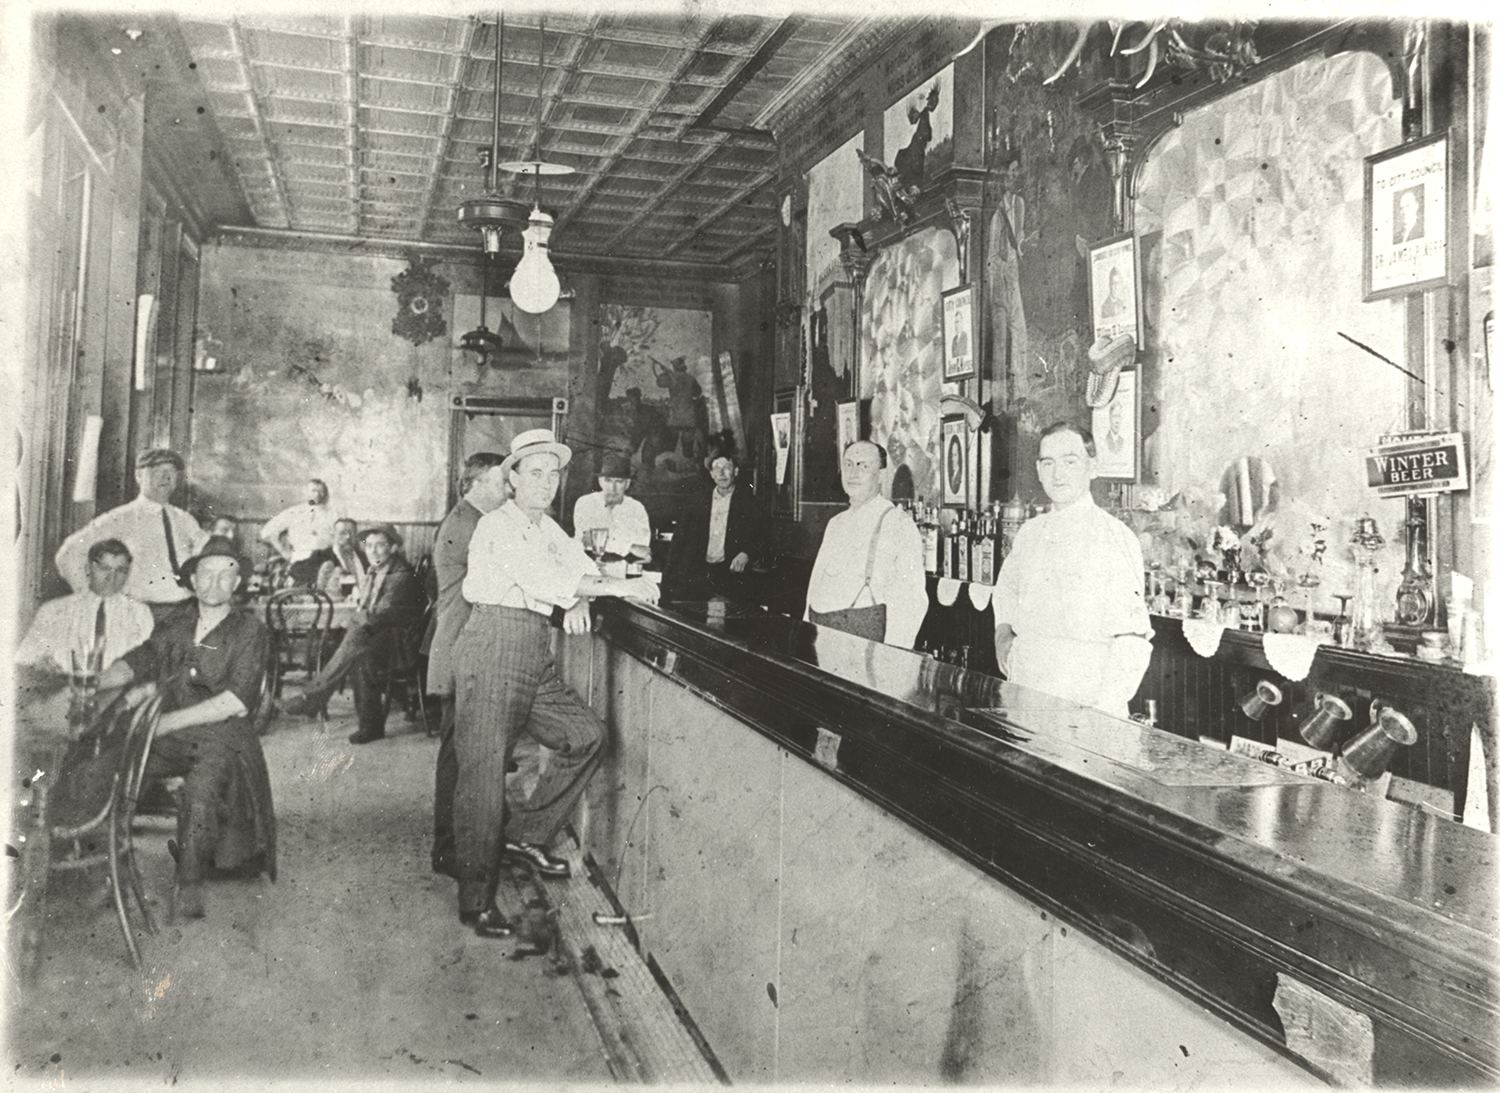 Zoglmann's Saloon interior, c. 1910. Zoglmann-Linz Family Photo Collection. MSS 874, Detre Library & Archives, Heinz History Center.